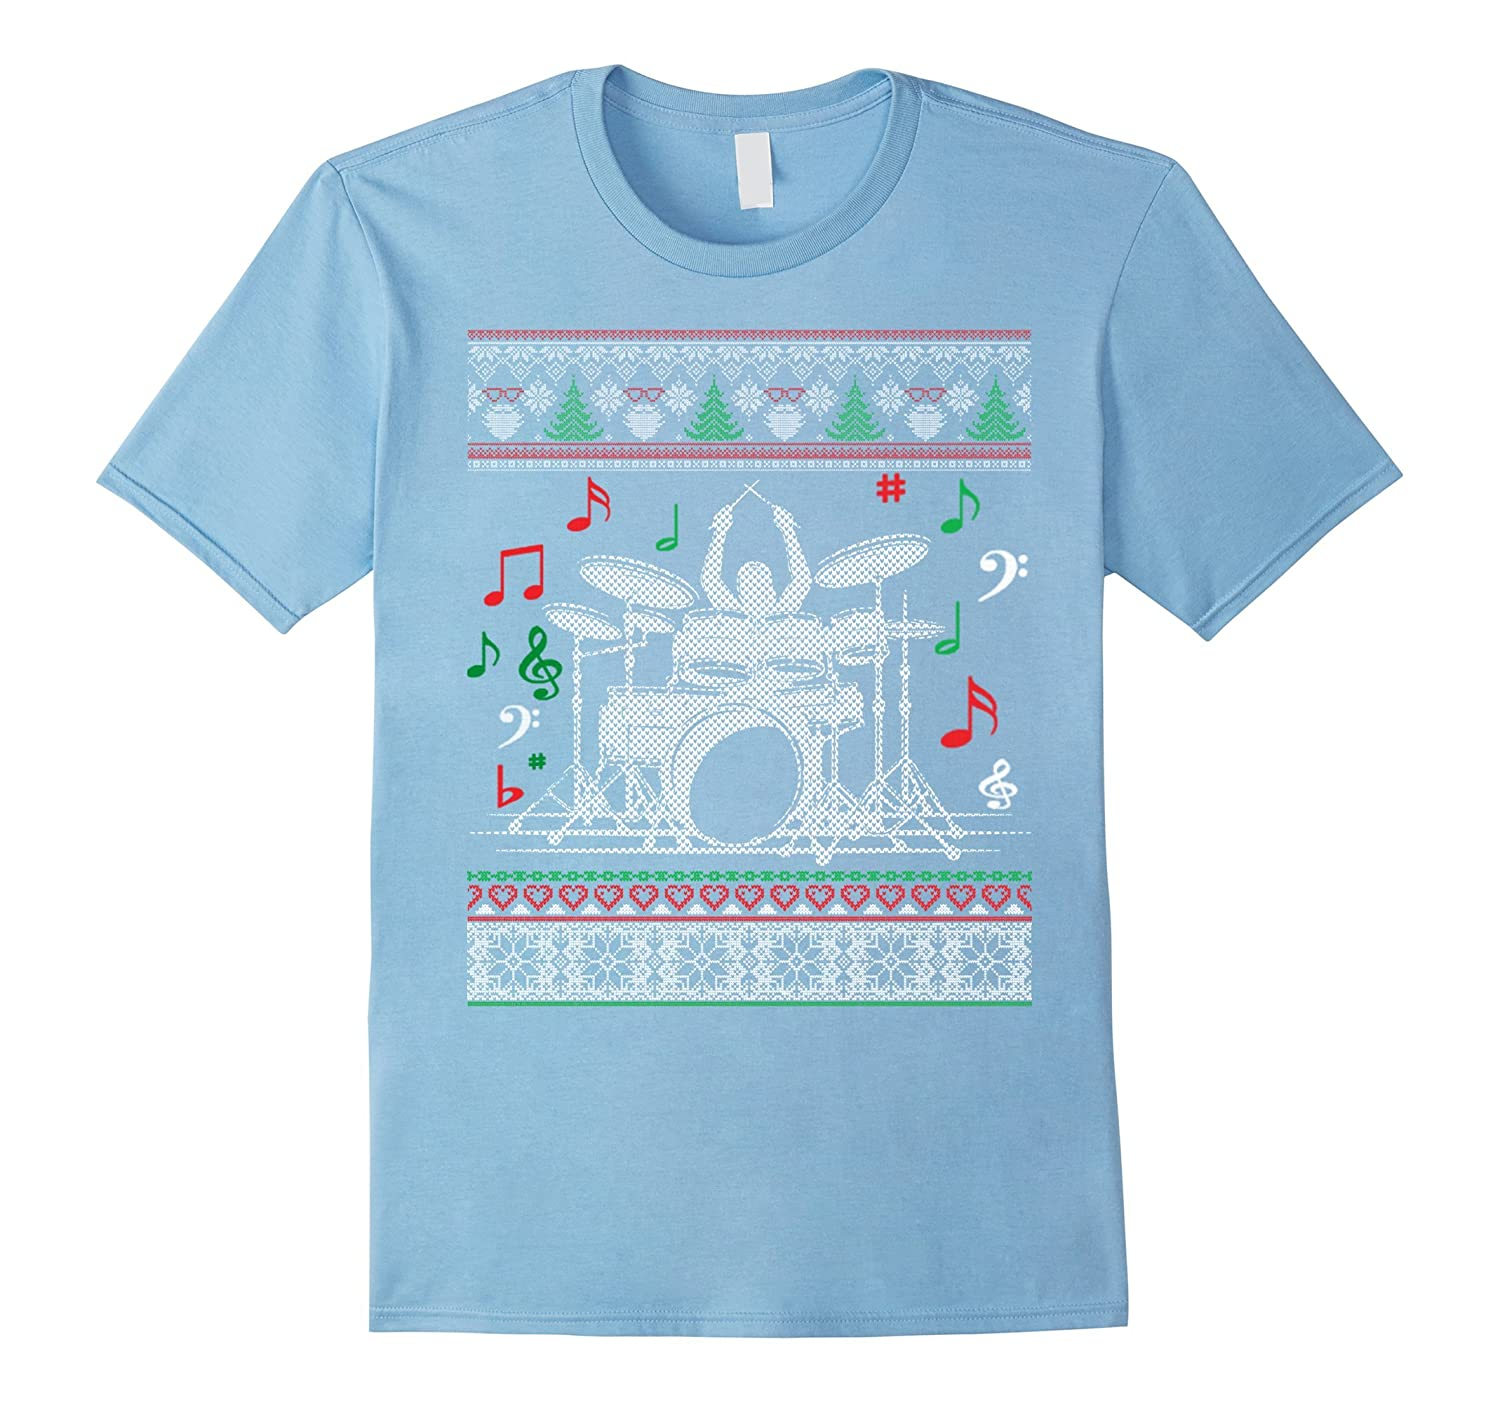 Drums Band Music Rock Ugly Christmas Sweater T Shirt Anz Anztshirt